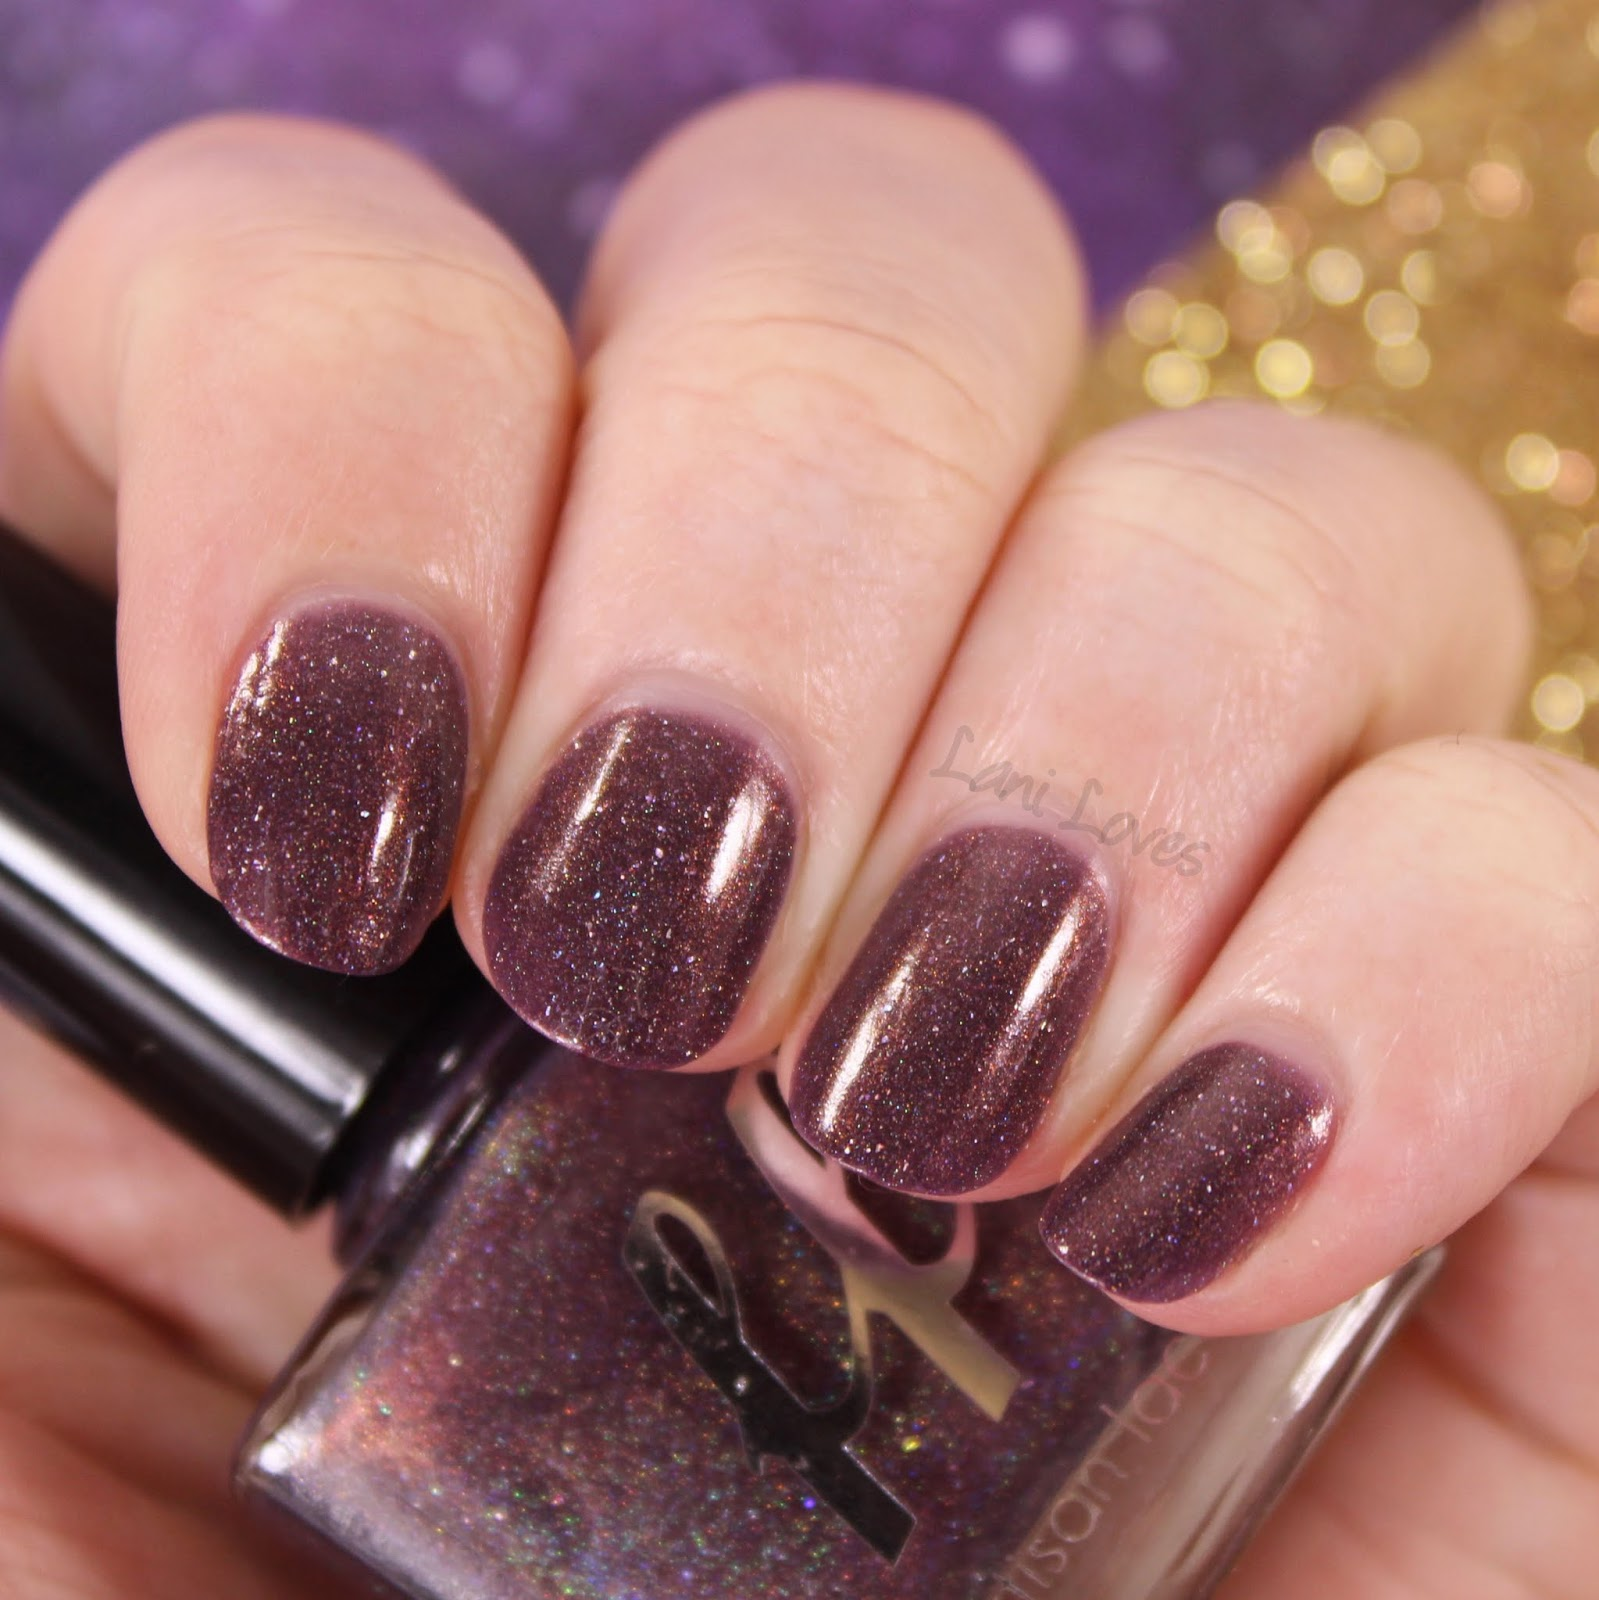 Femme Fatale Cosmetics Blogger Collaboration Collection 2017 ...